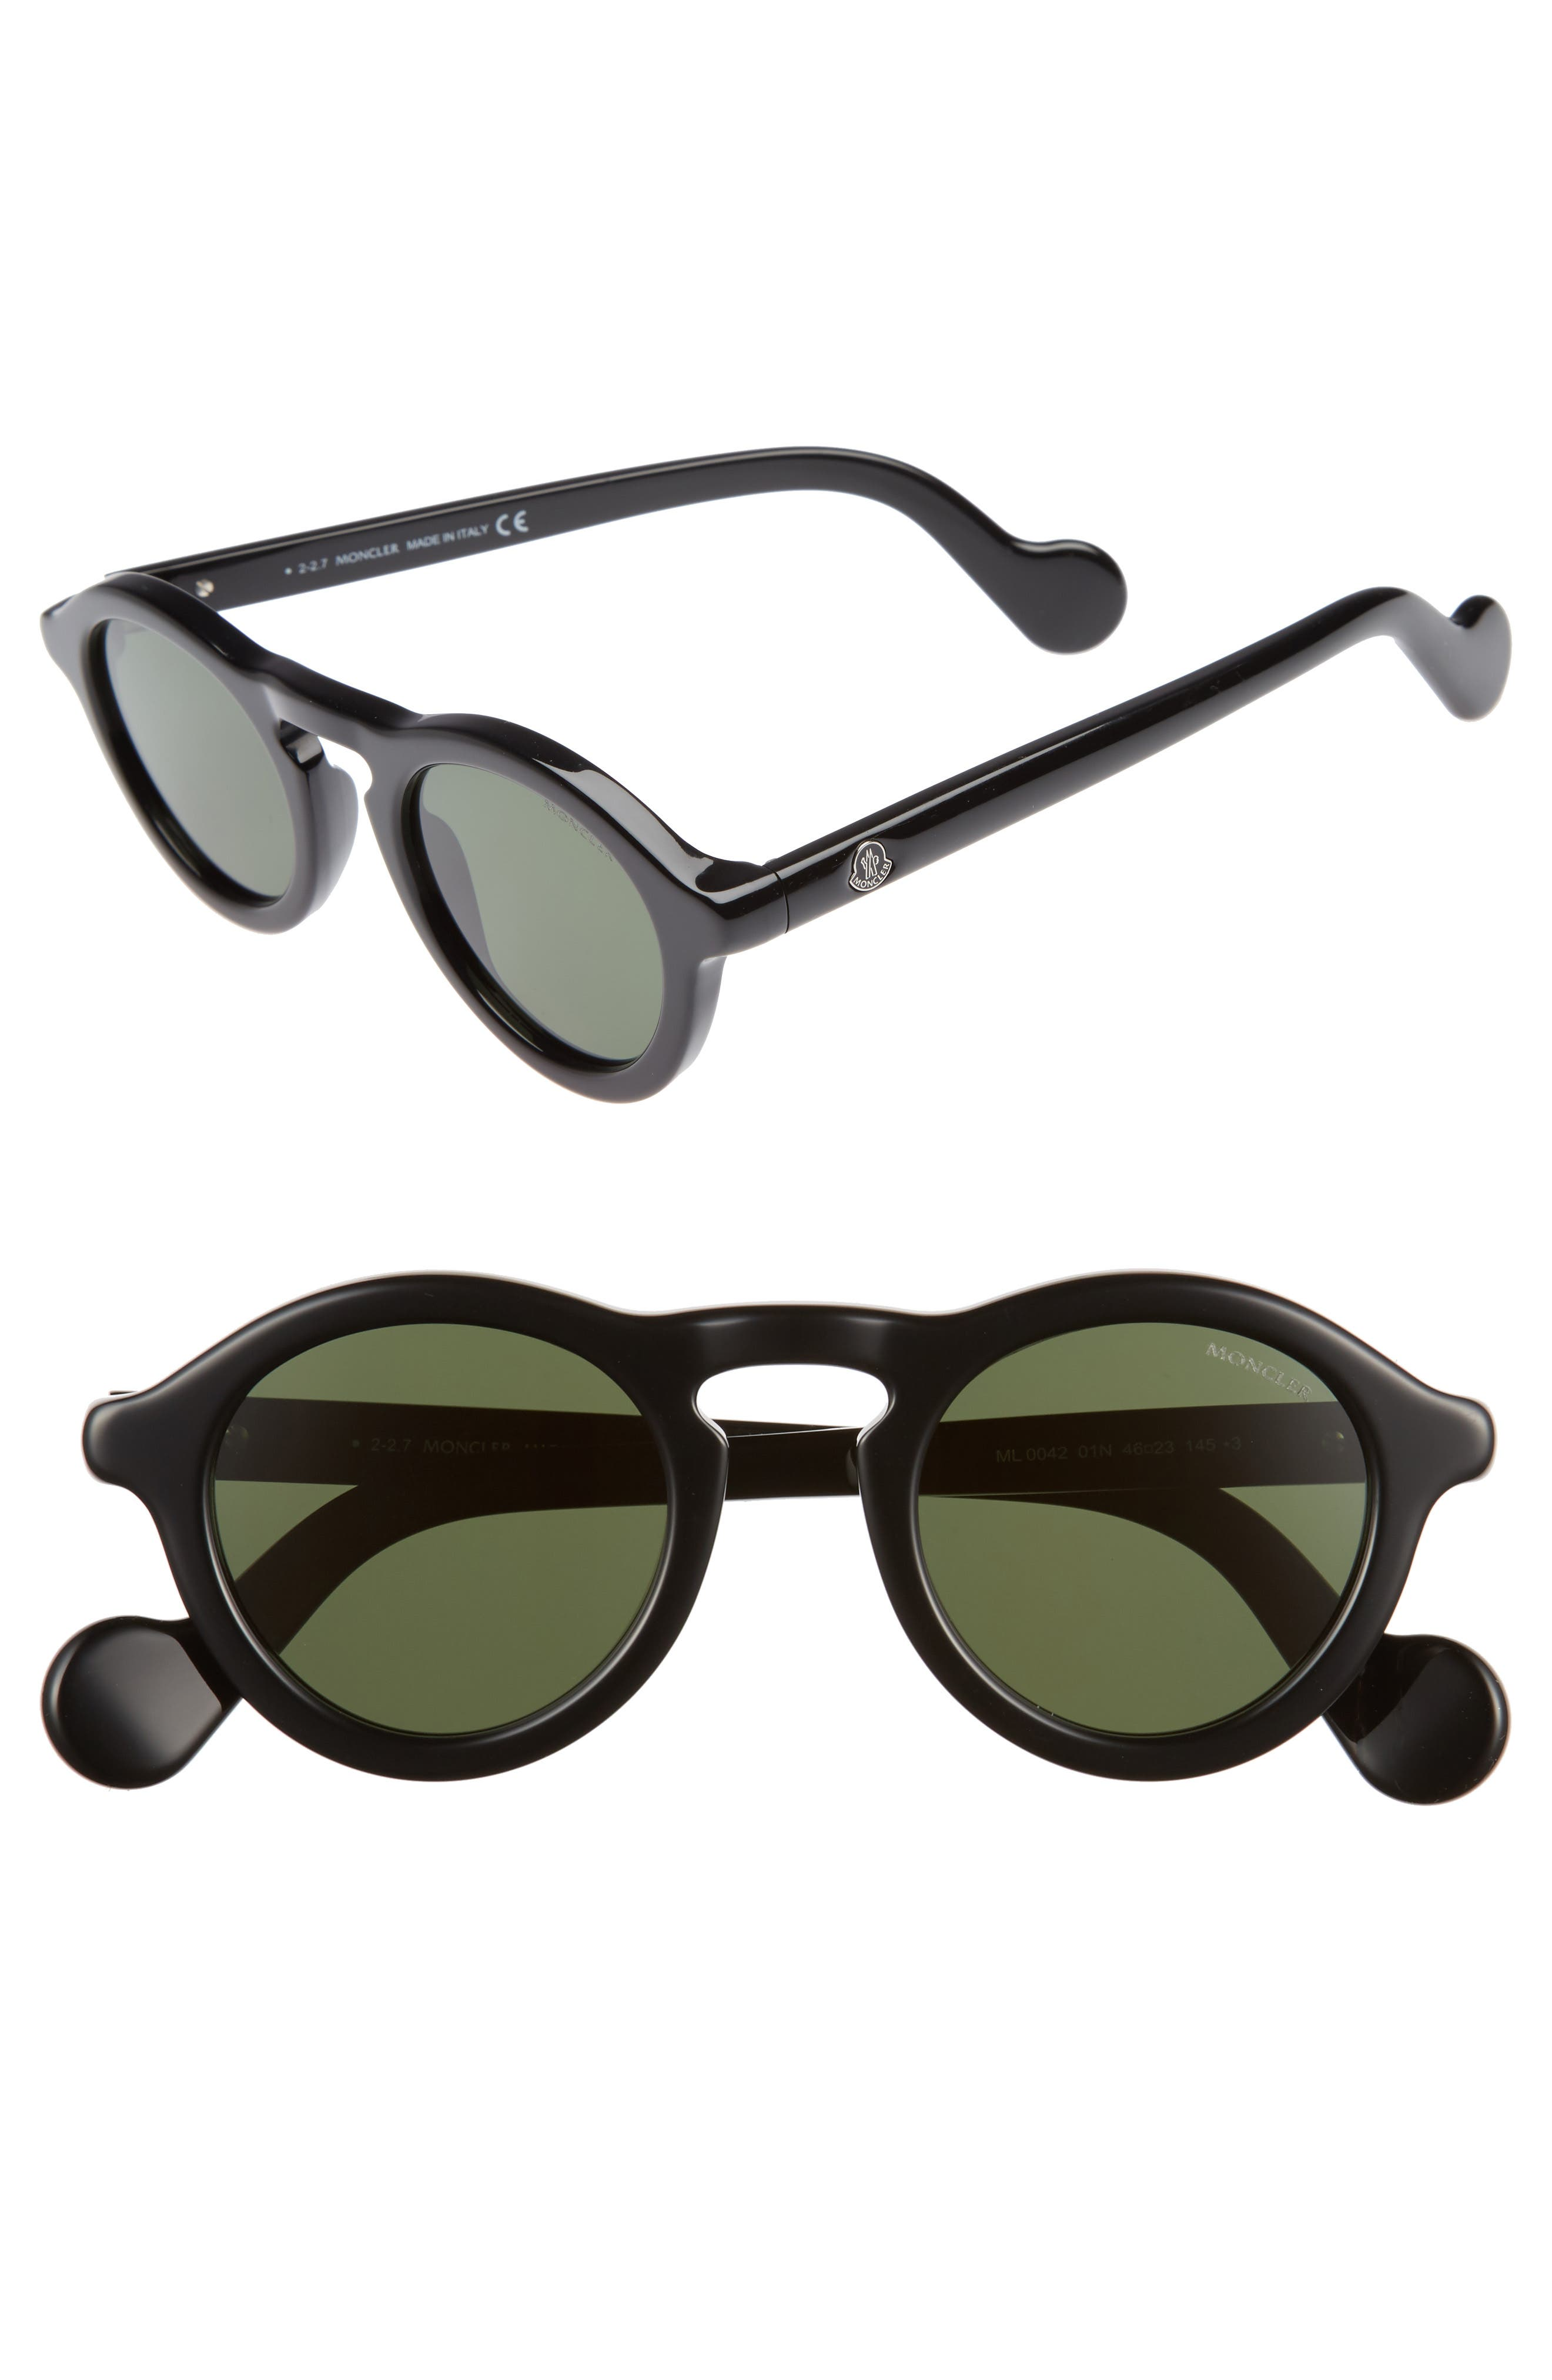 46mm Round Sunglasses,                         Main,                         color, BLACK/ VINTAGE GREEN